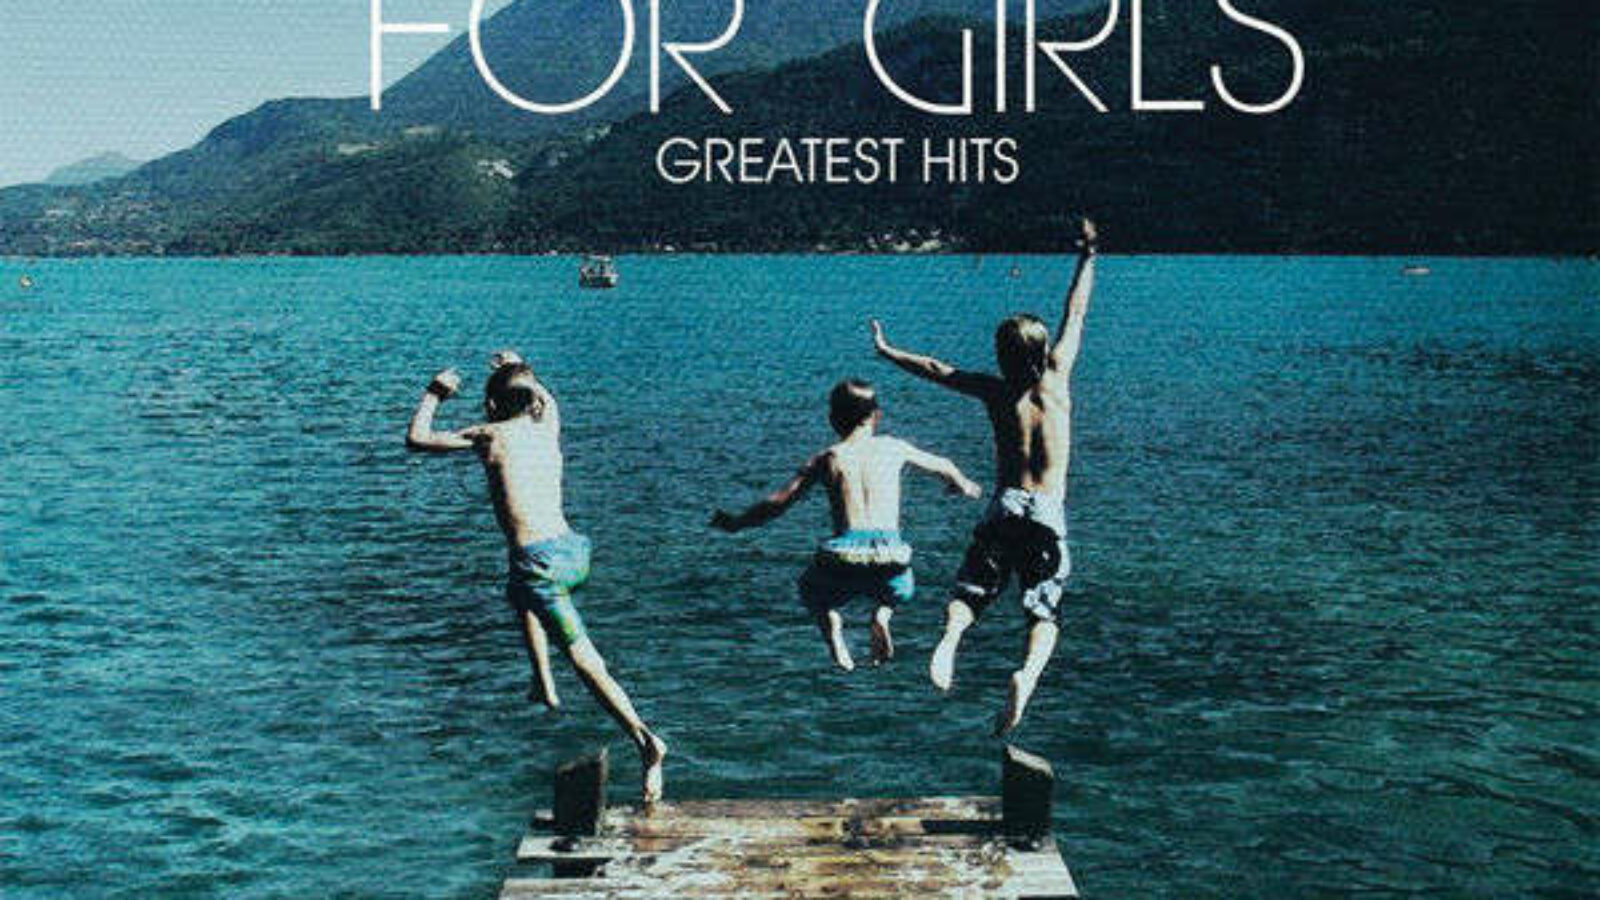 SCOUTING FOR GIRLS Greatest Hits